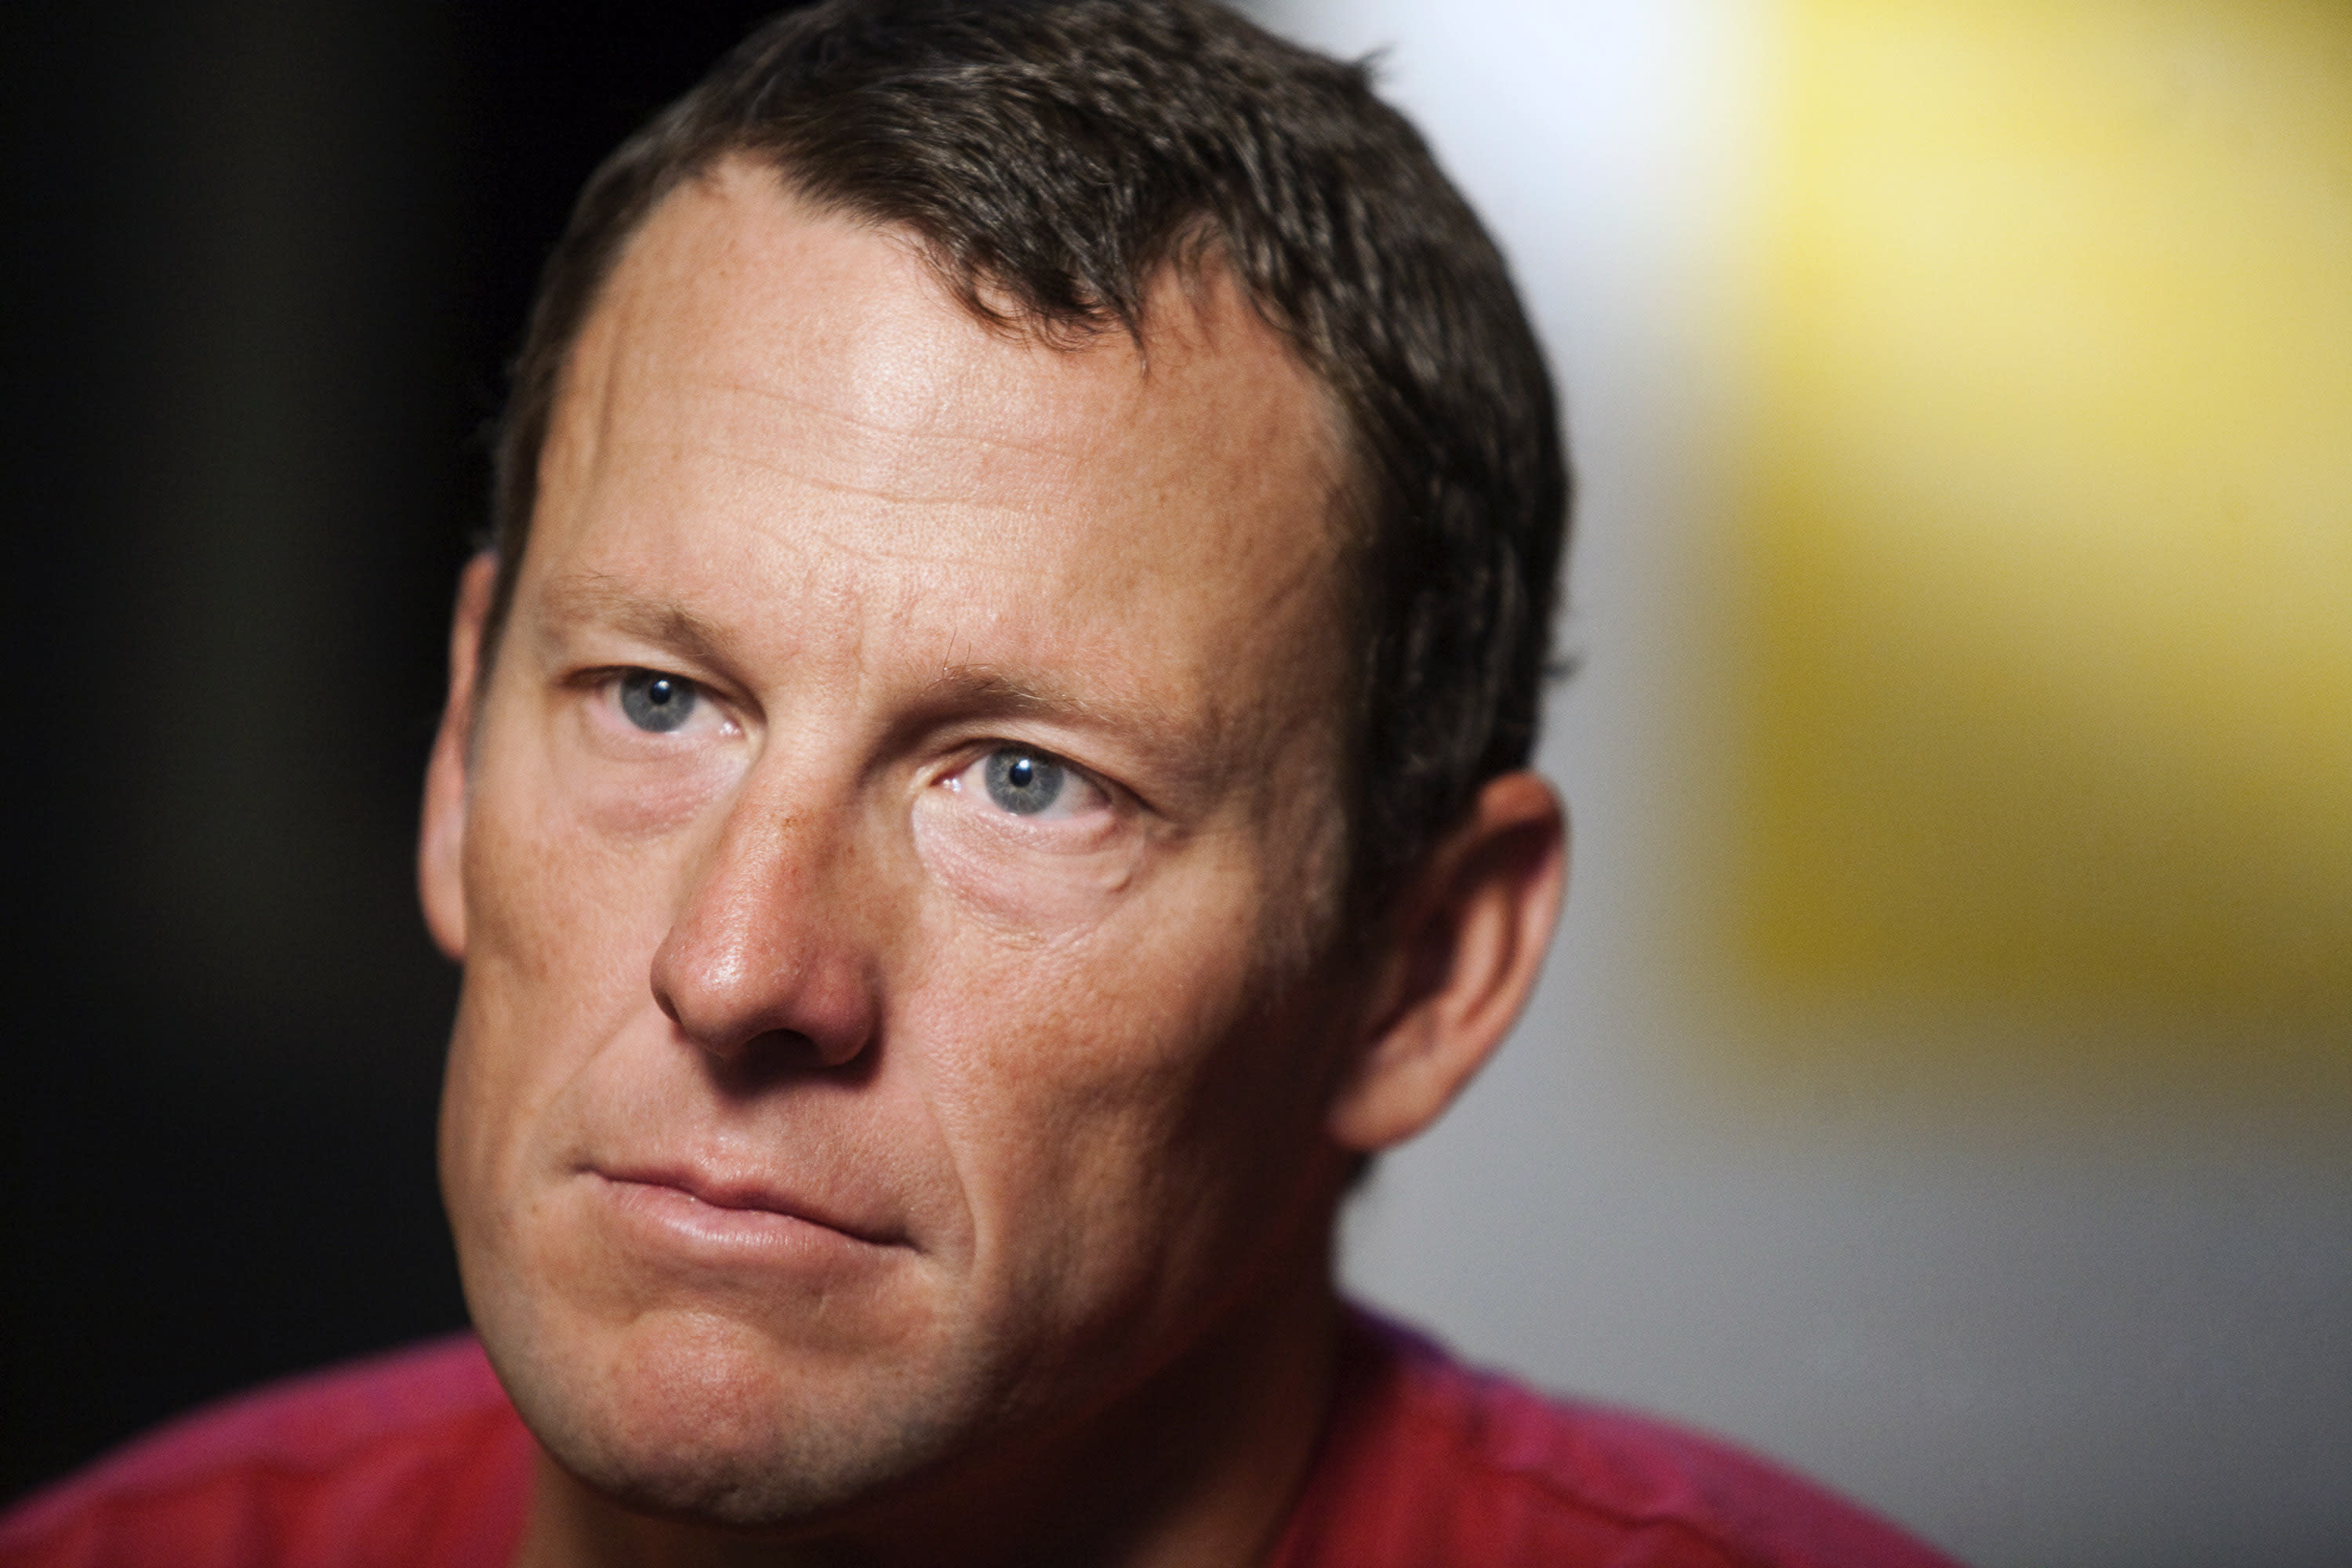 Lance Armstrong: I'd never cheat playing golf